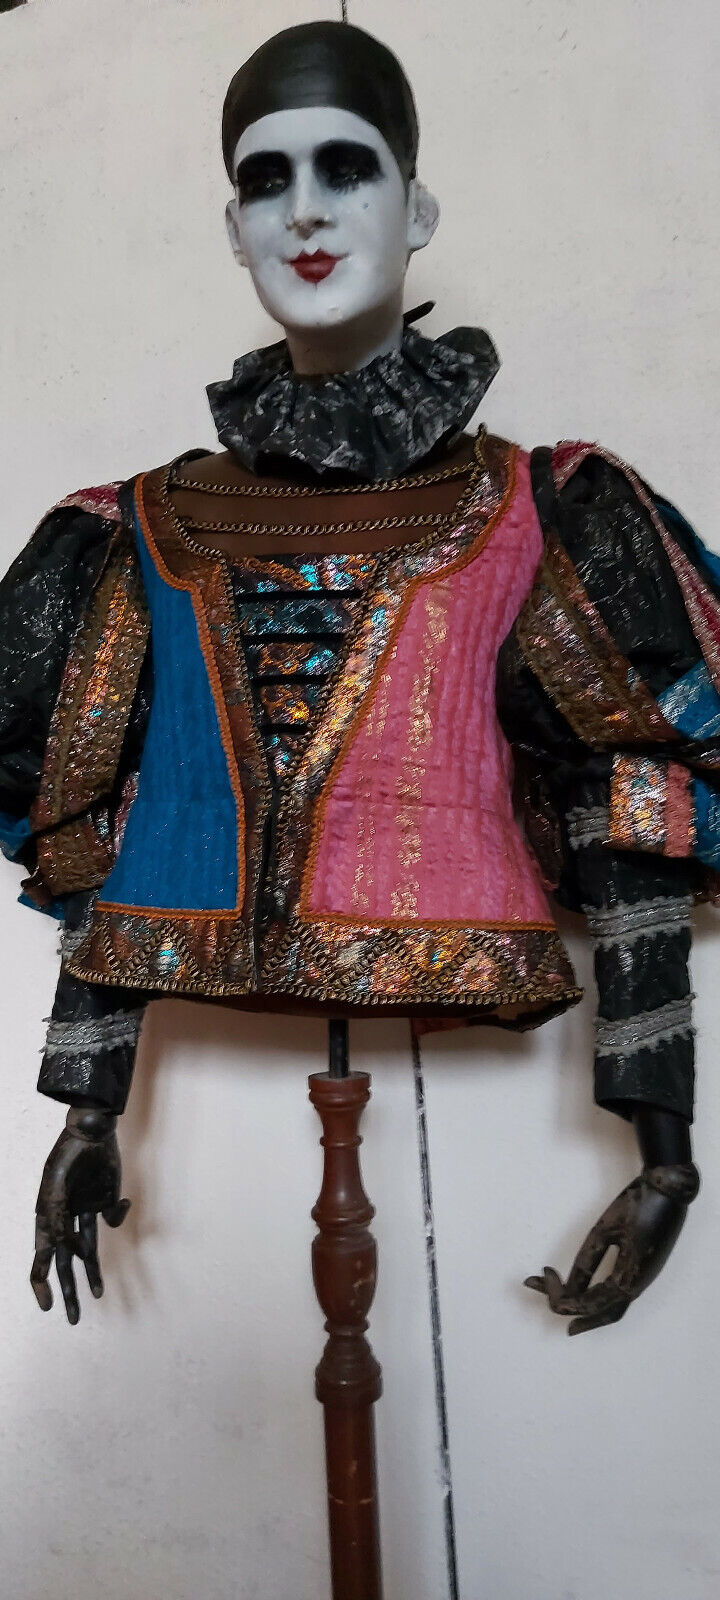 ANTIQUE/VINTAGE HEAVY QUALITY MADE JESTER EX FILM PERIOD COSTUME/ THEATRE 40in